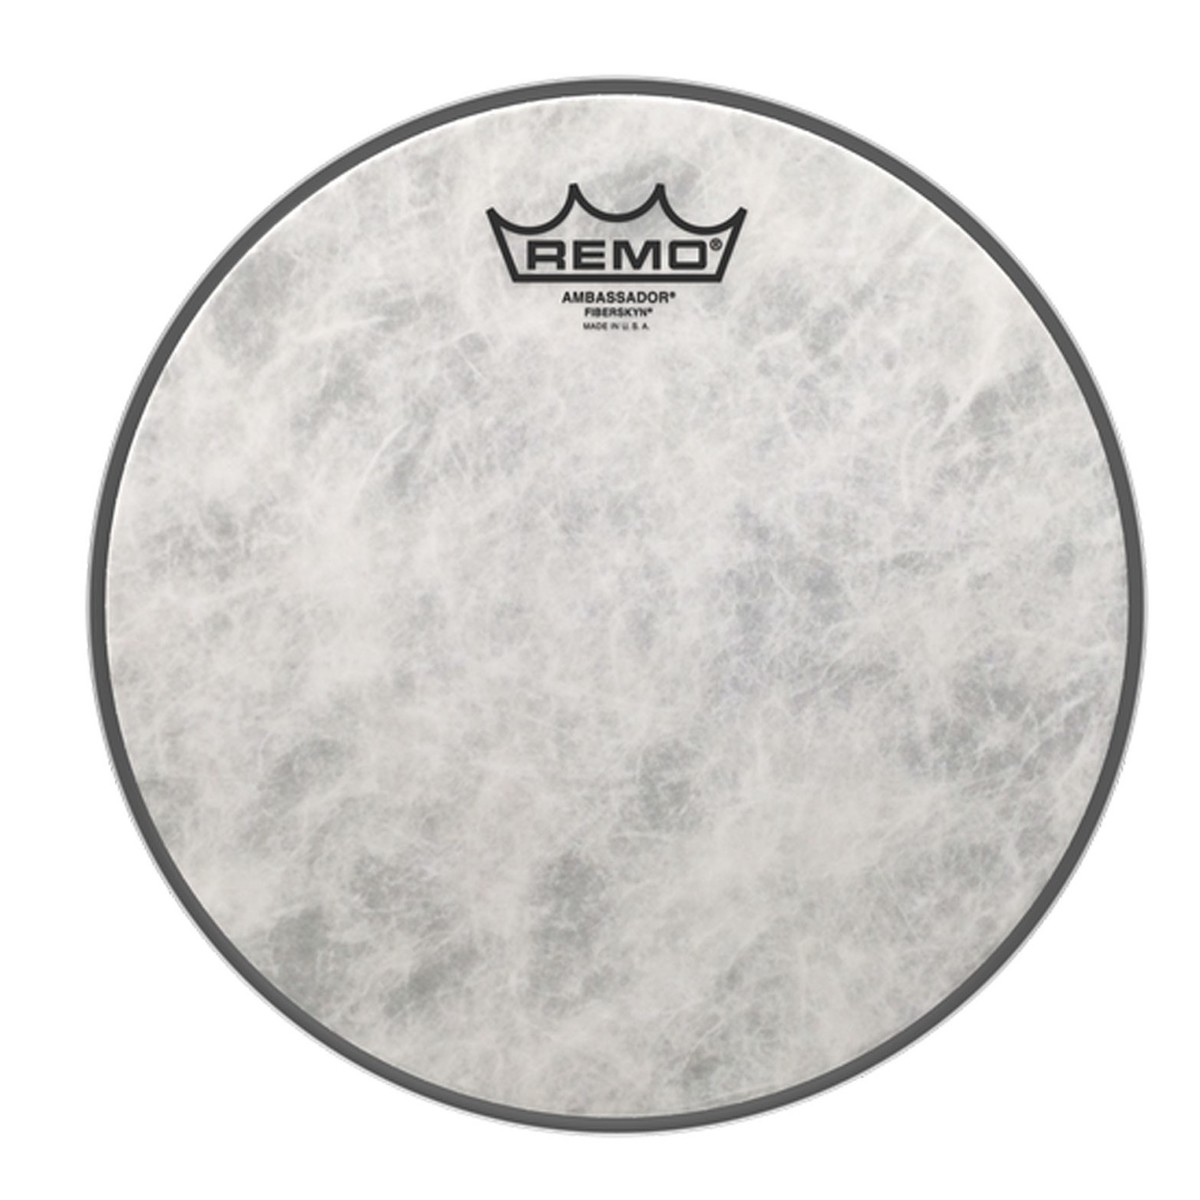 Click to view product details and reviews for Remo Ambassador Fiberskyn 3 10 Drum Head.